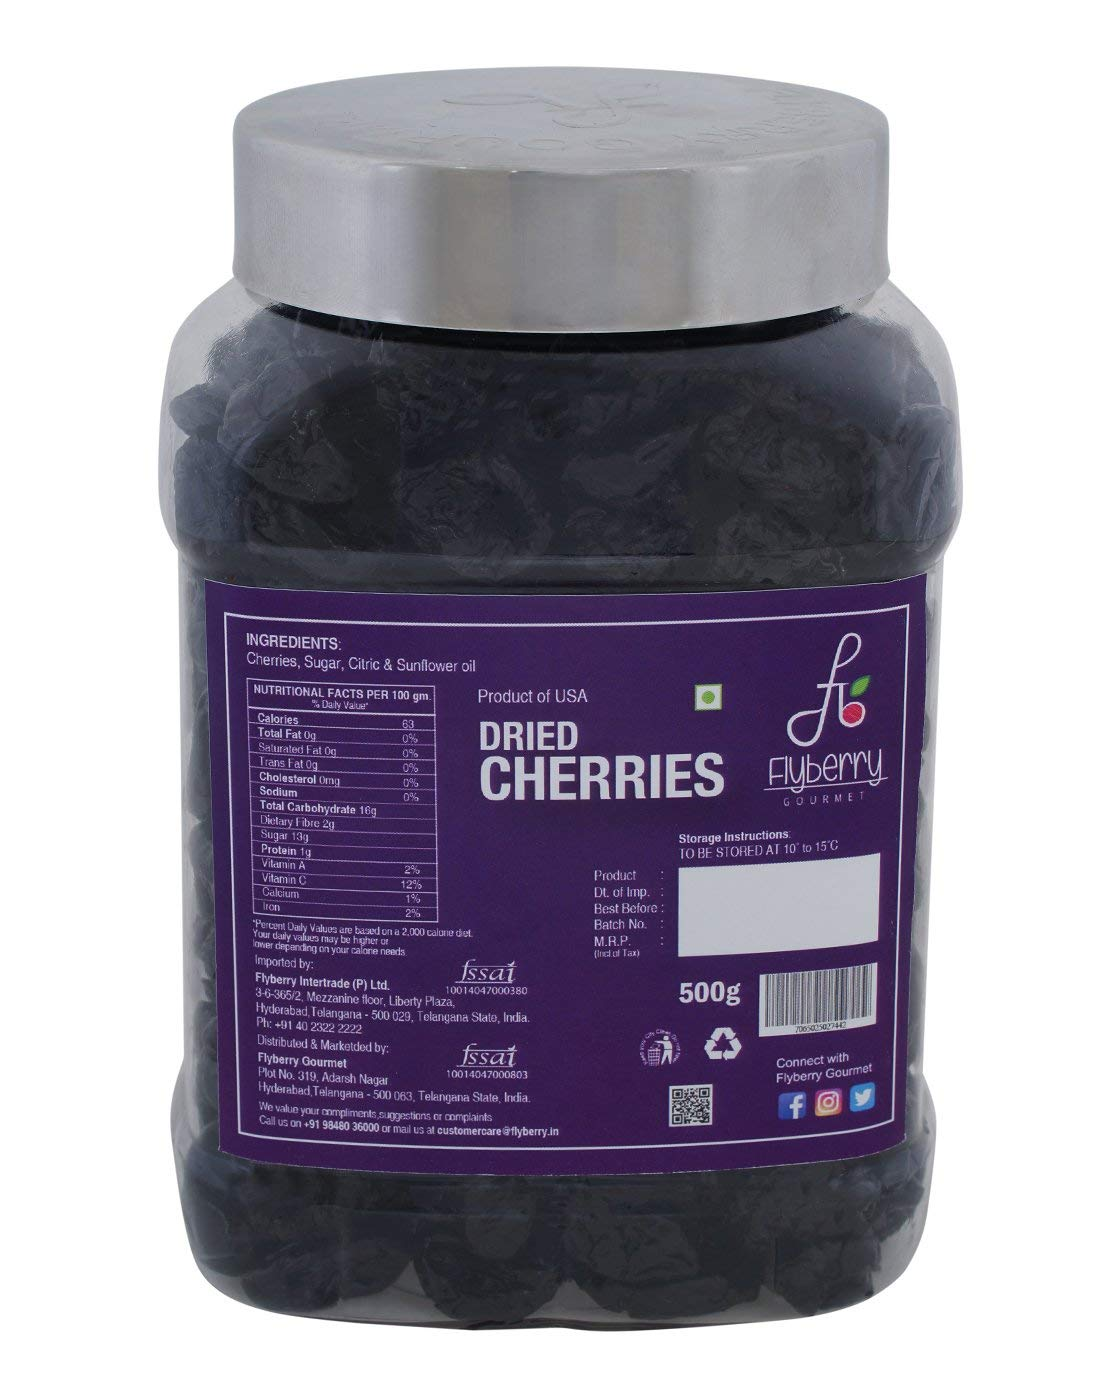 Flyberry Dried Cherries